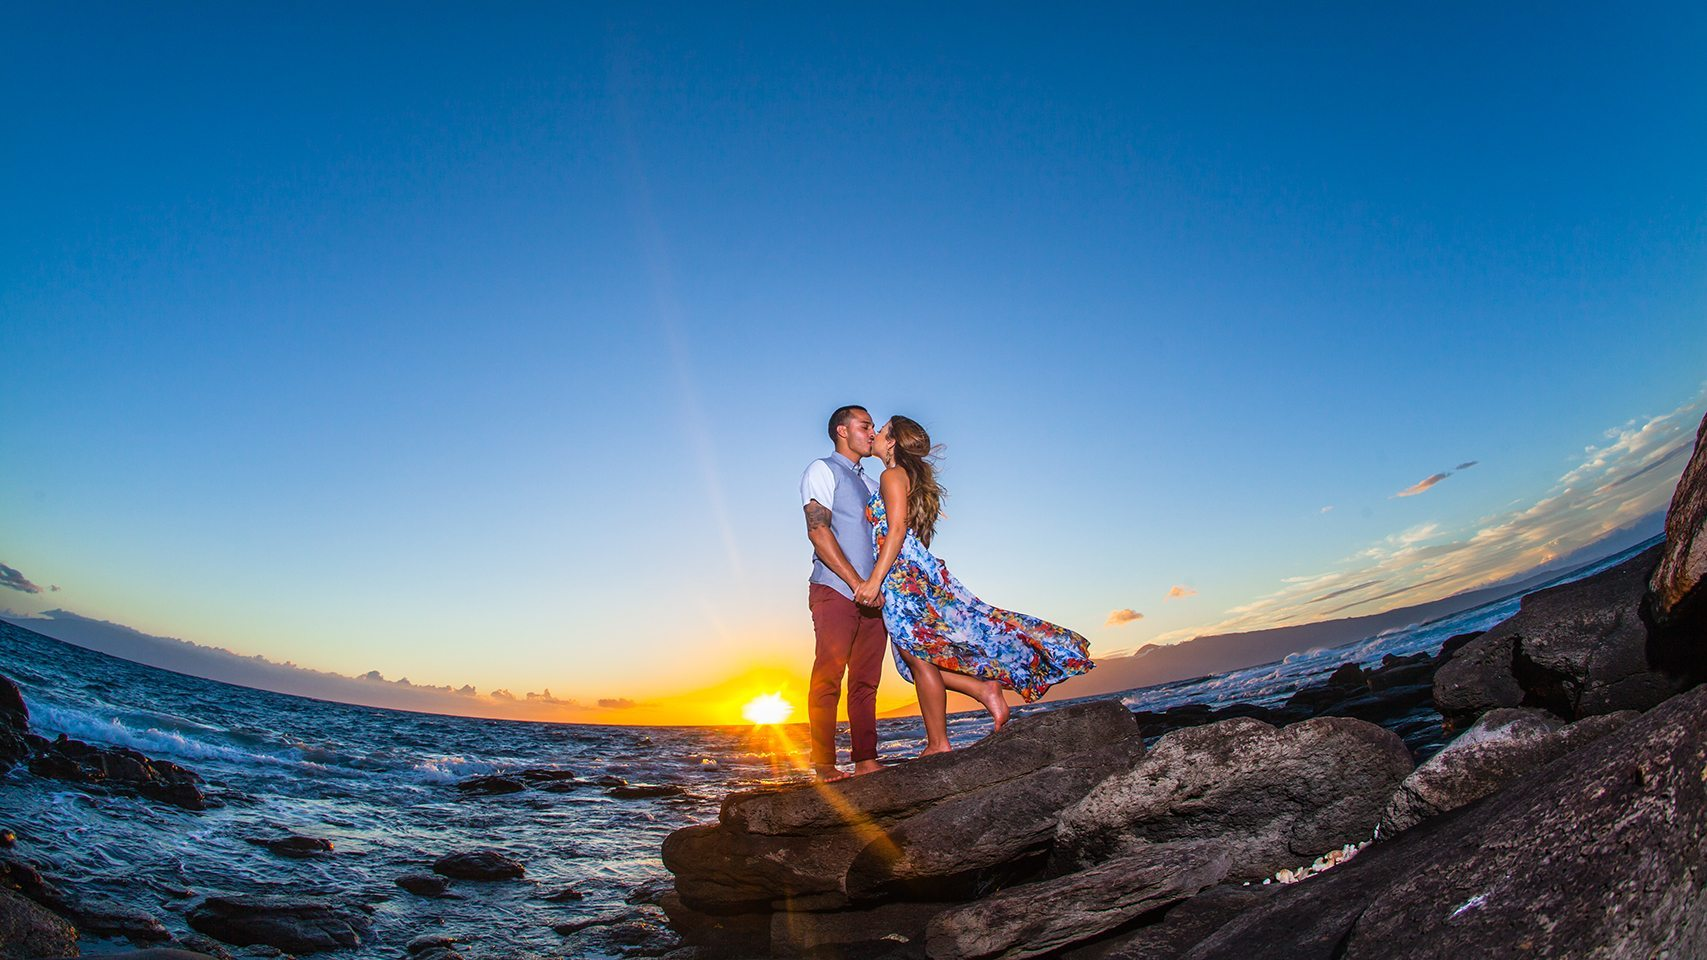 Hawaii couples portraits Maui, Behind The Lens Maui.jpg